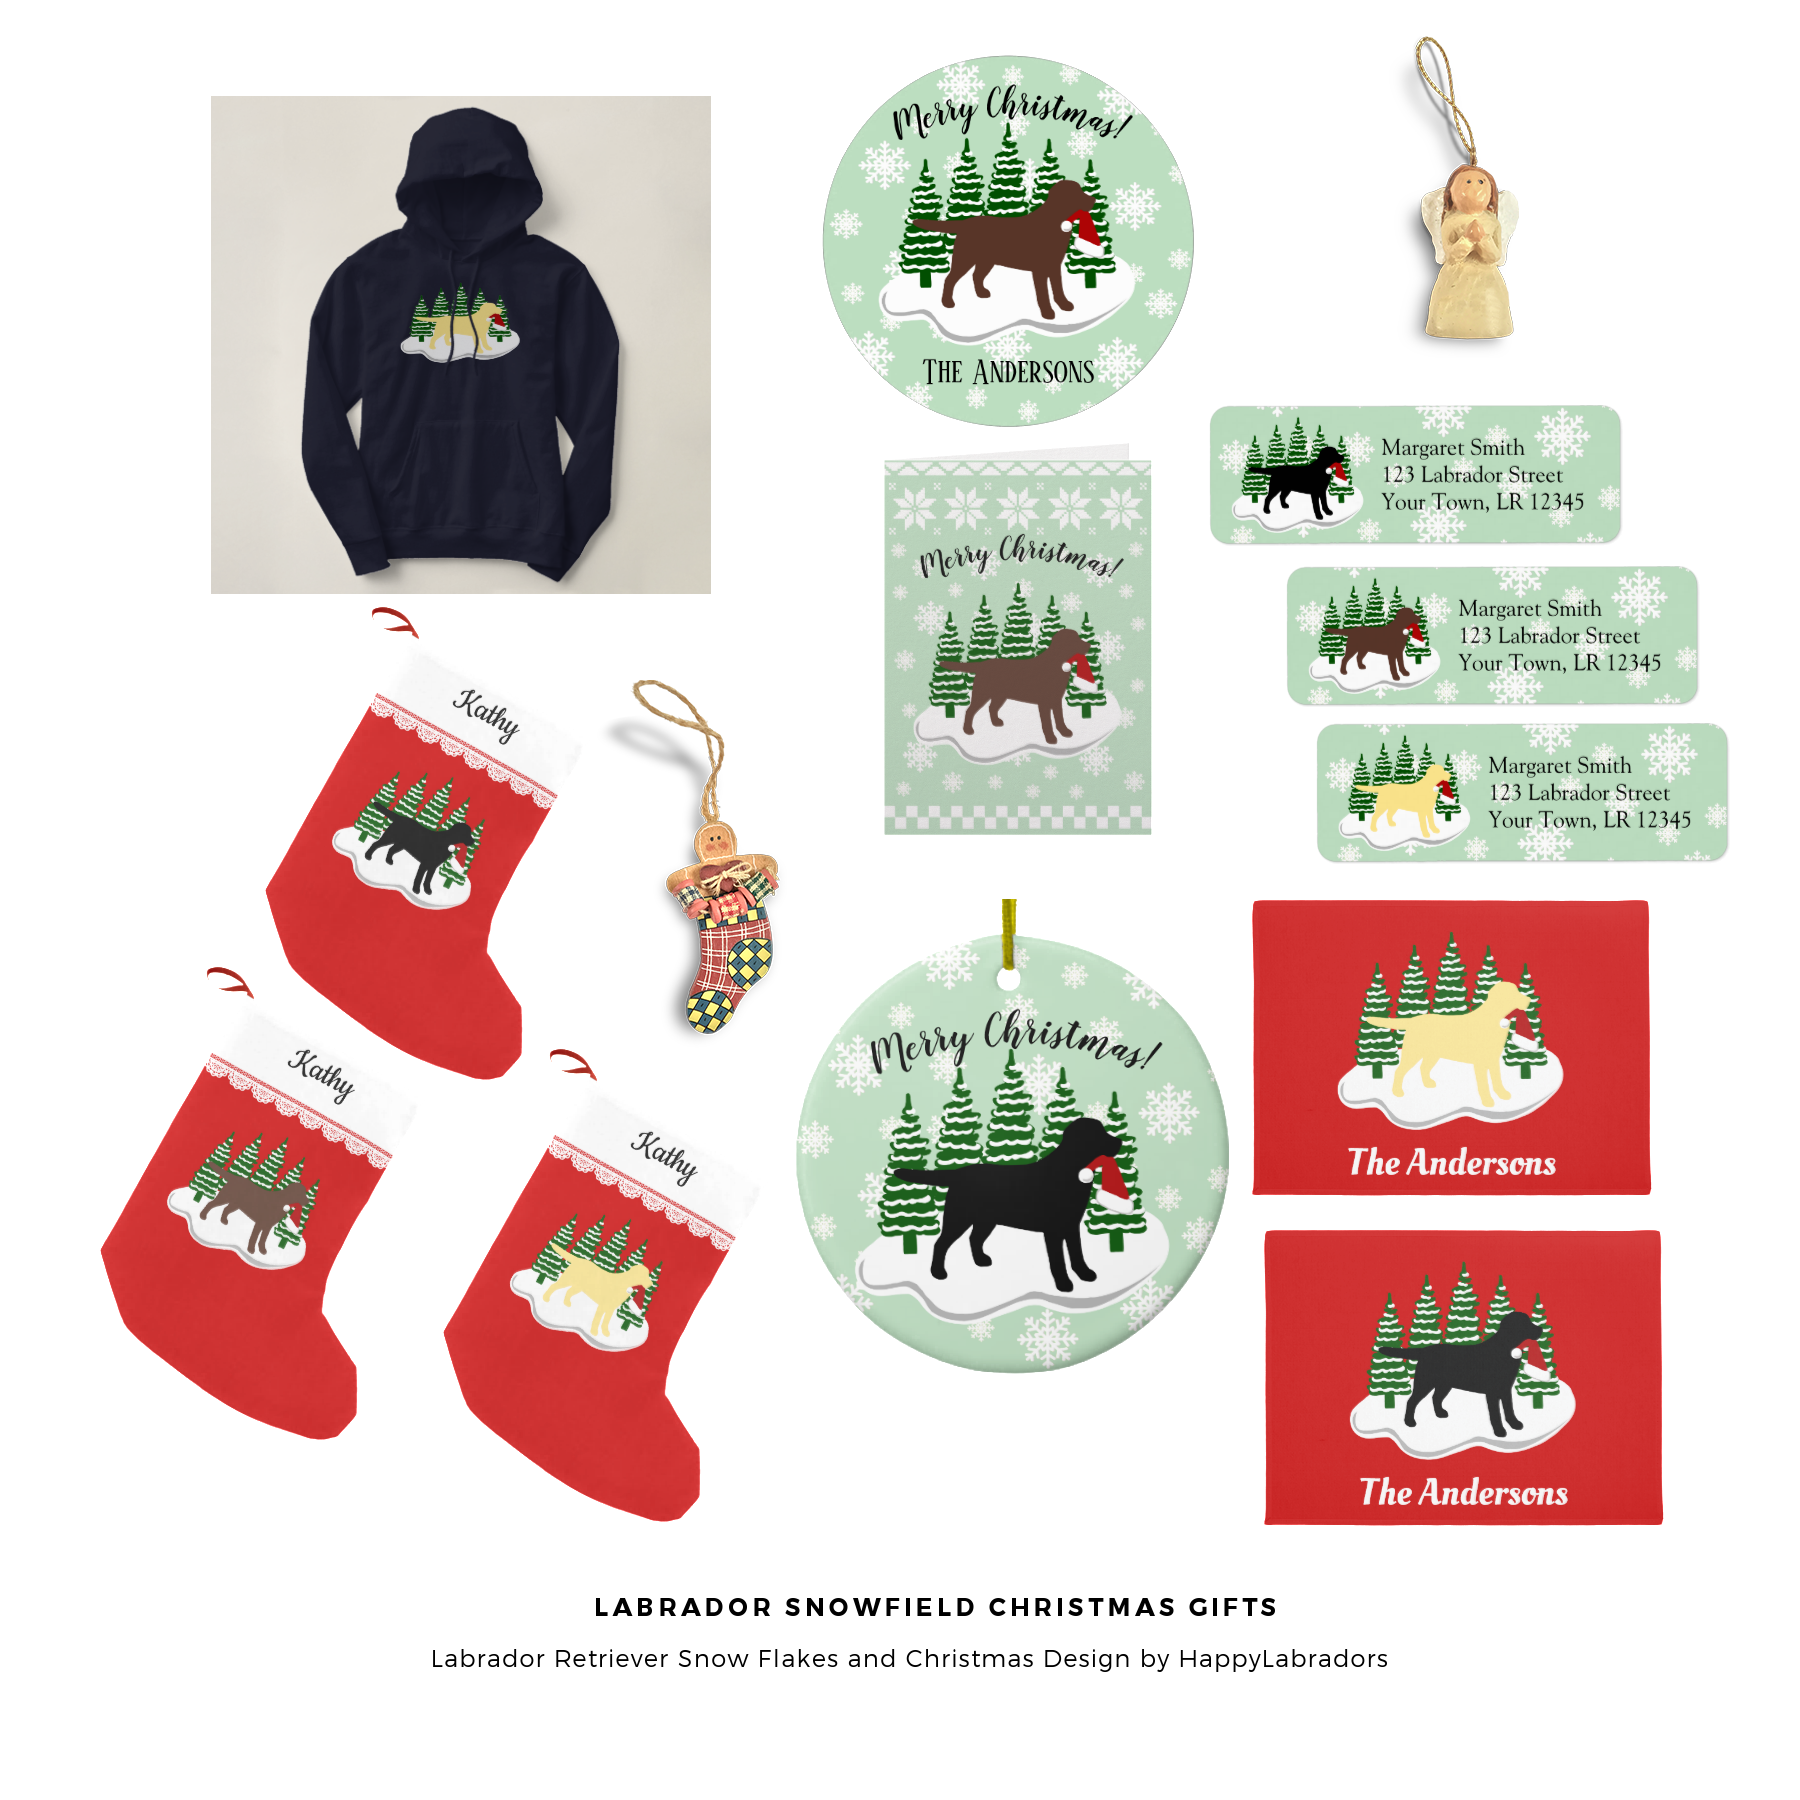 Labrador Snowfield Christmas Gift Ideas by HappyLabradors @zazzle